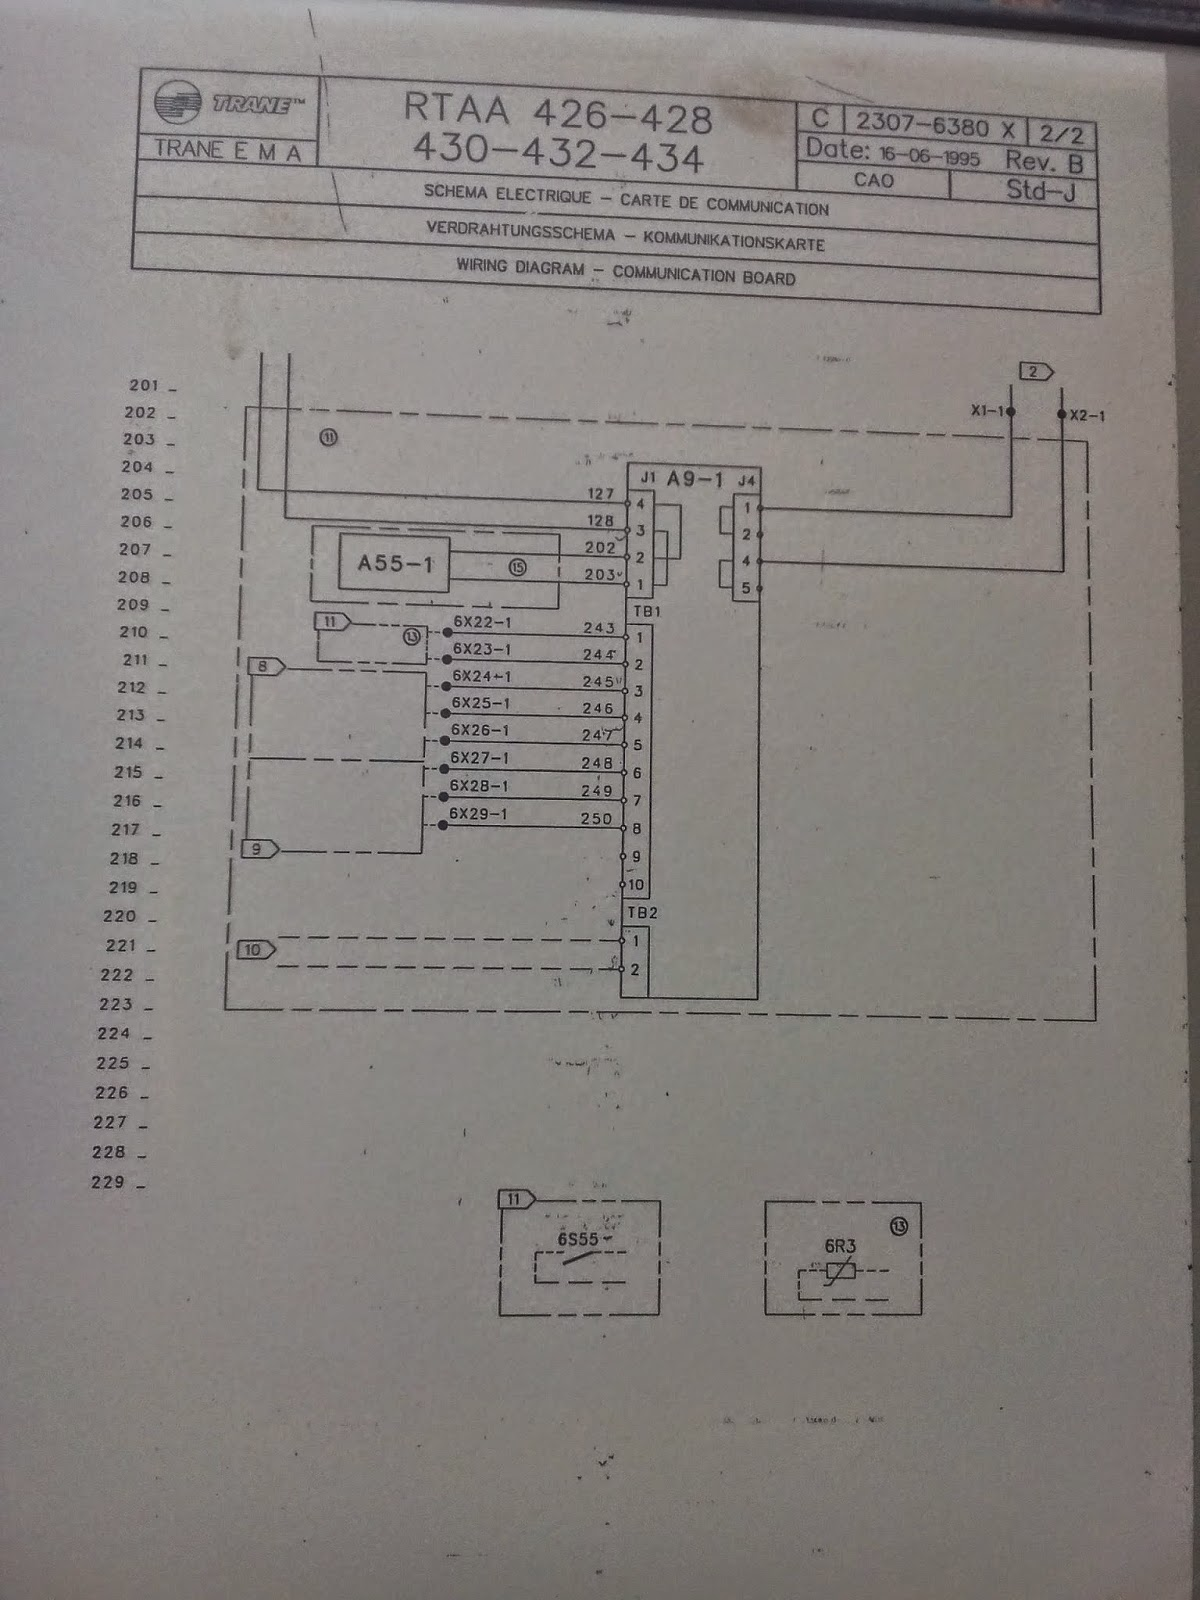 trane chiller wiring diagram time delay relay rtaa waterfurnace diagrams